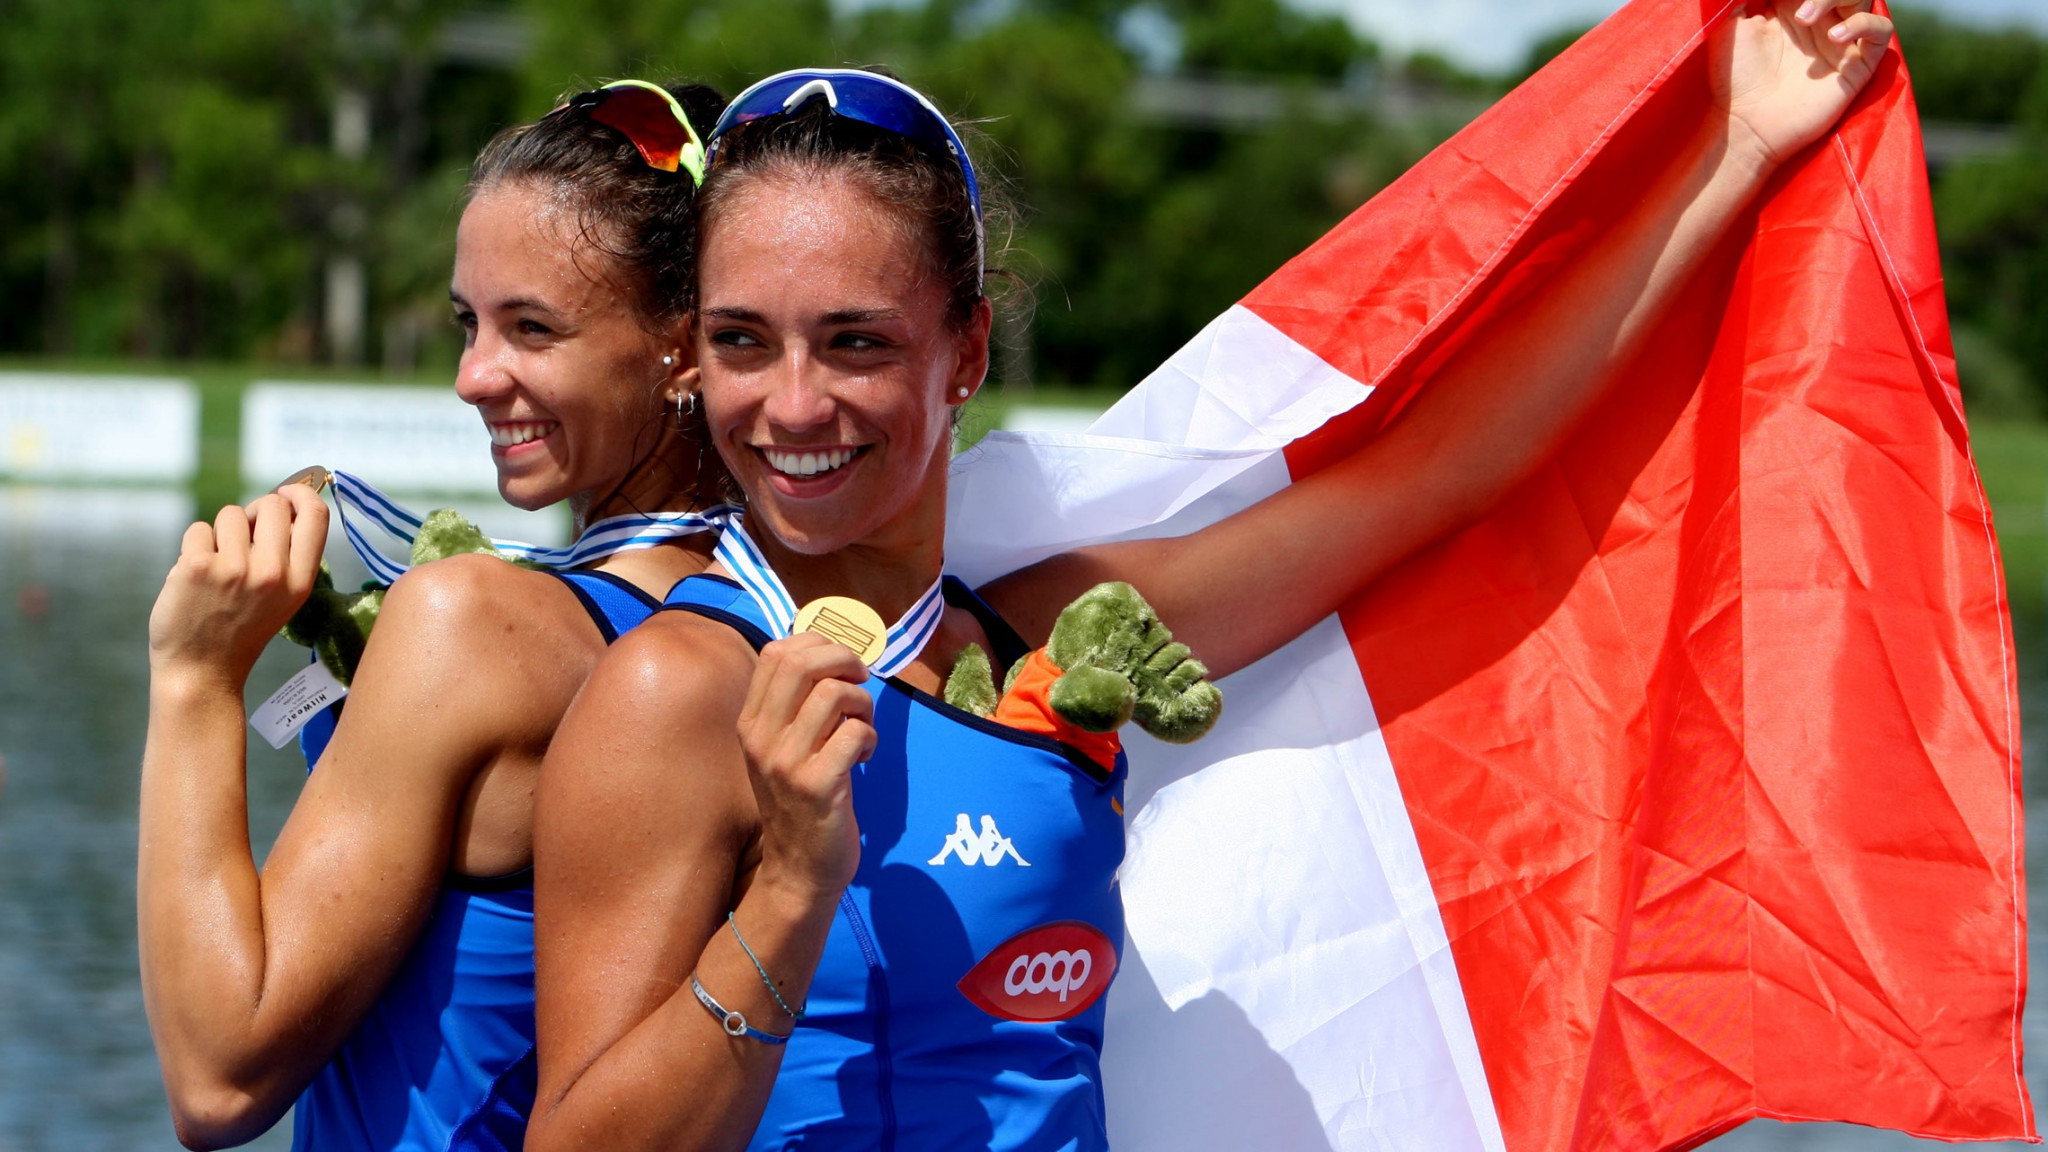 Italy win five golds on first day of finals at World Rowing Under-23 Championships